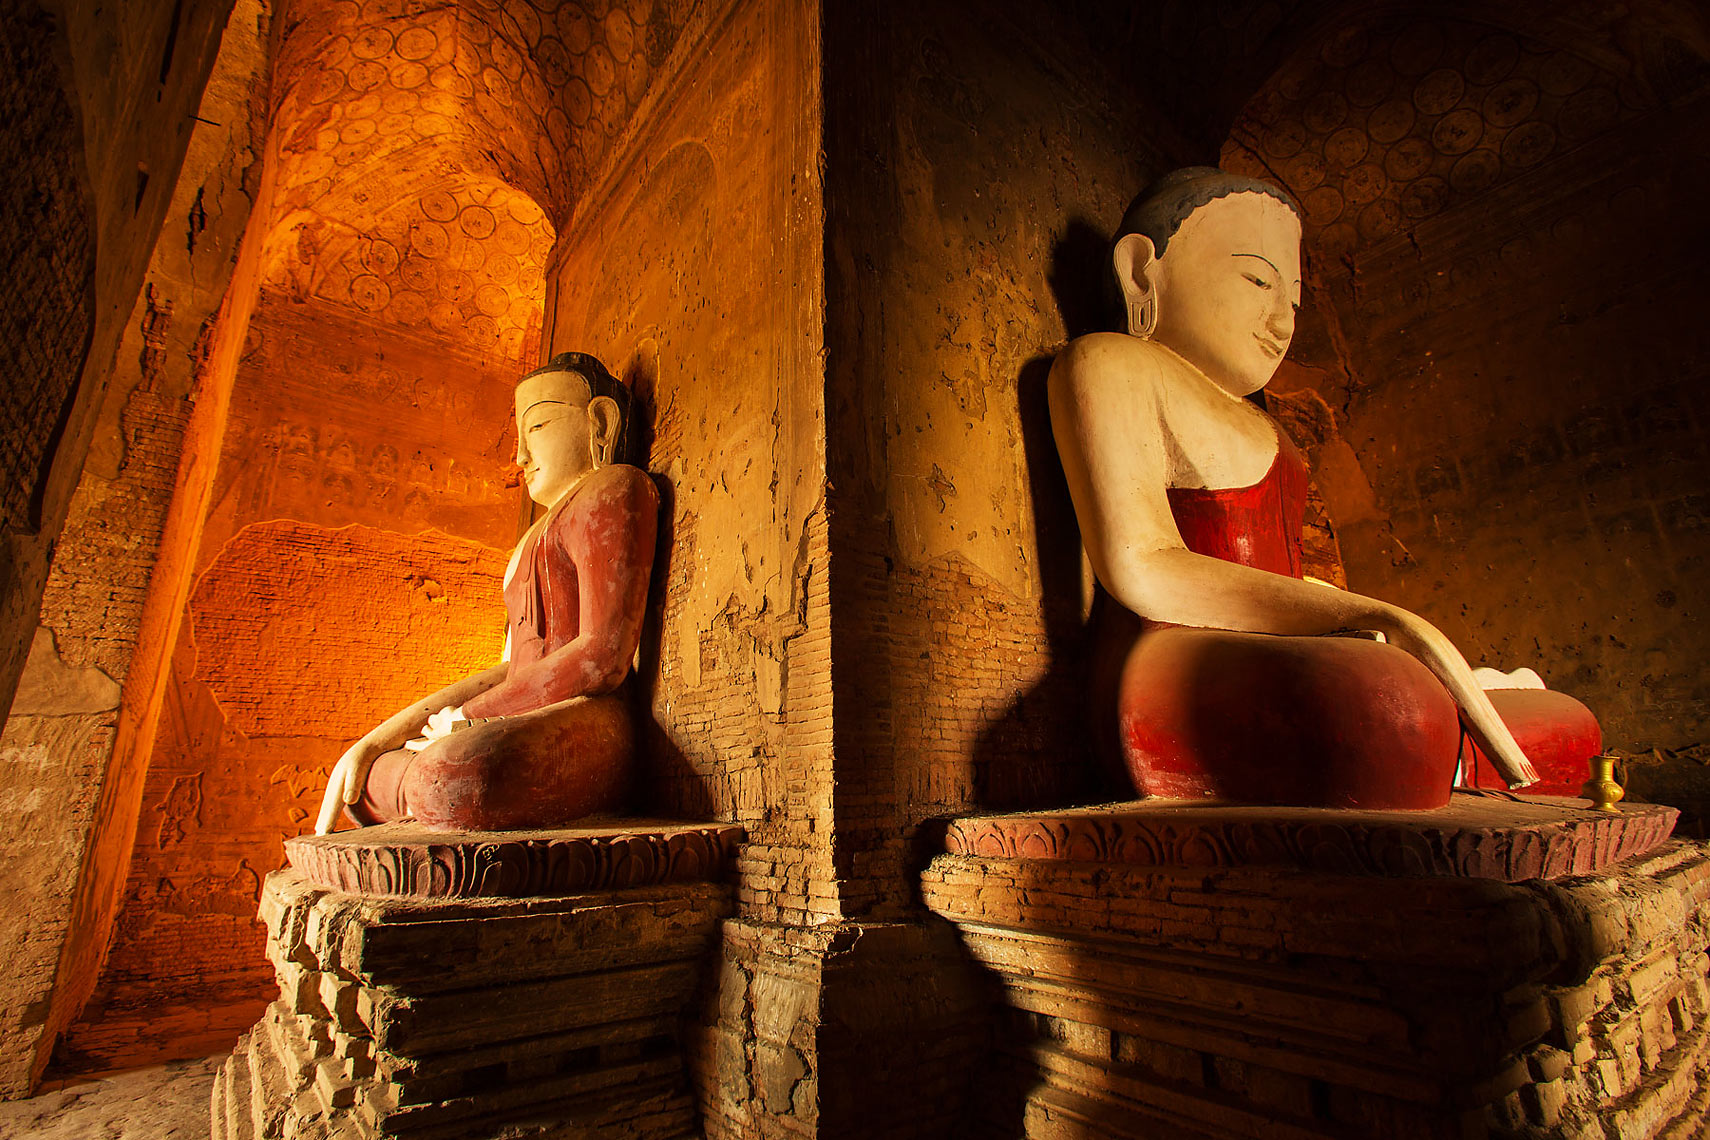 Buddhist temple in Bagan Myanmar by Dave White Photo while in Burma